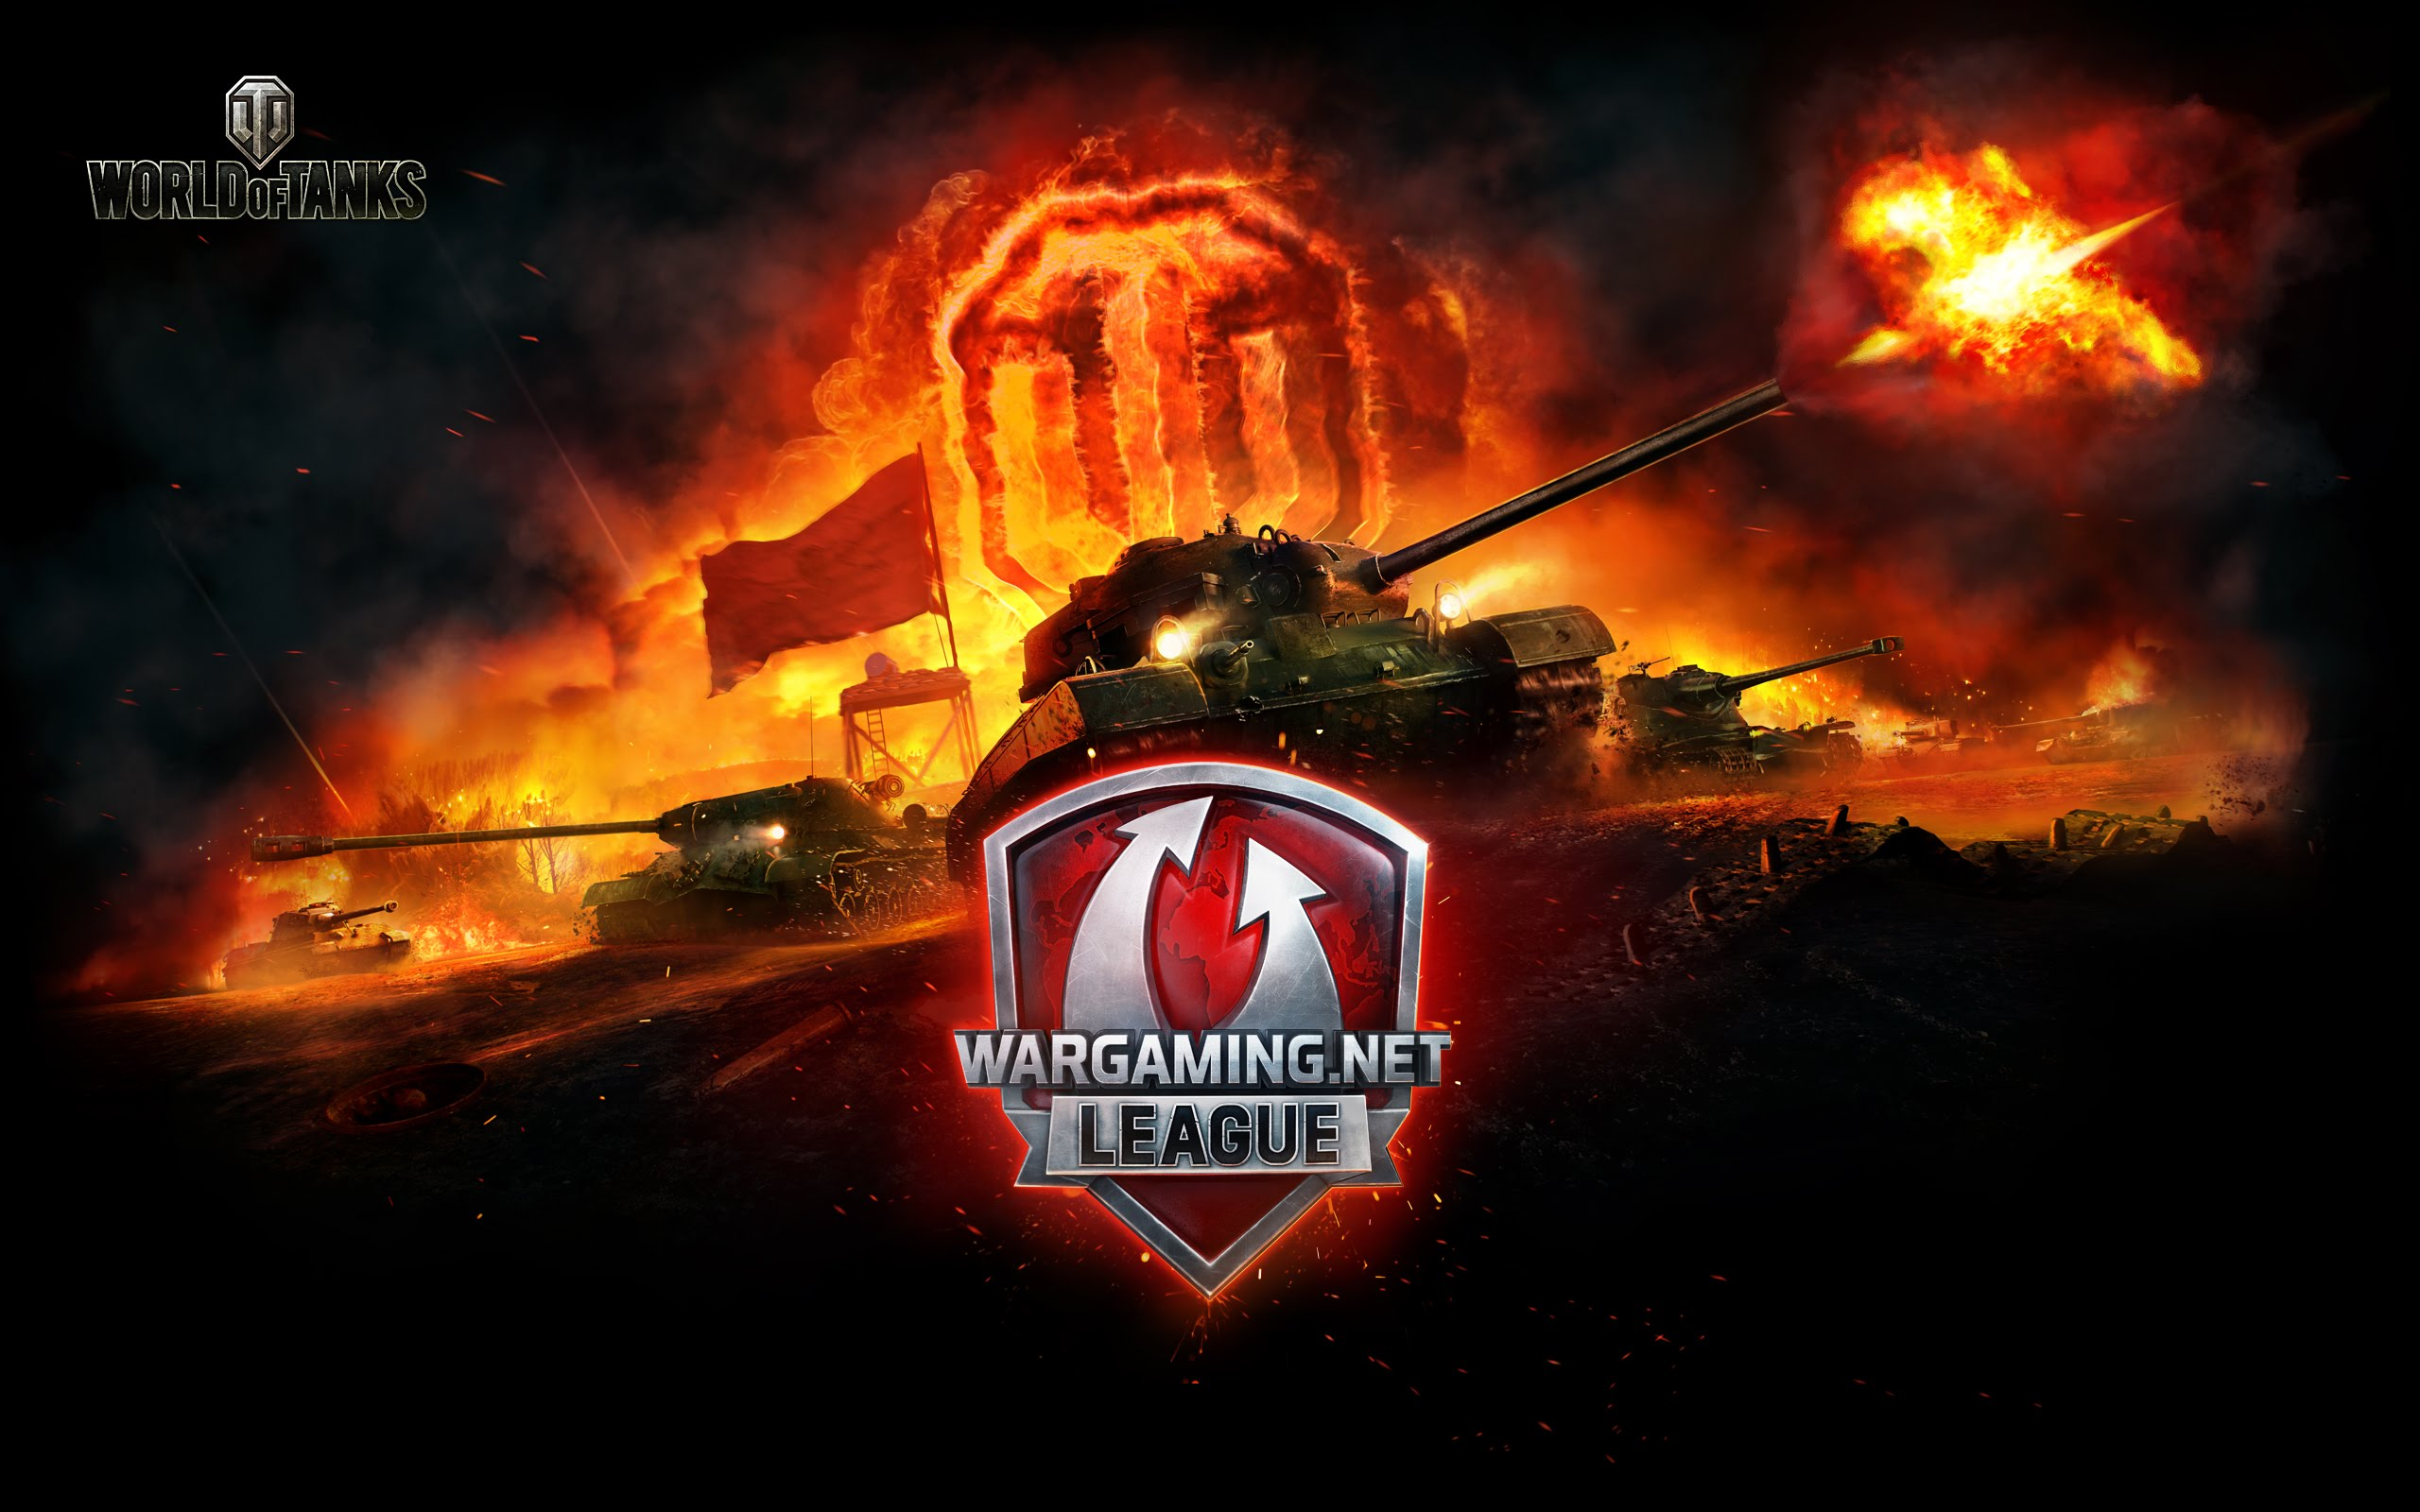 World of Tanks. Wargaming.NET League (сайт Минской школы киноискусства)